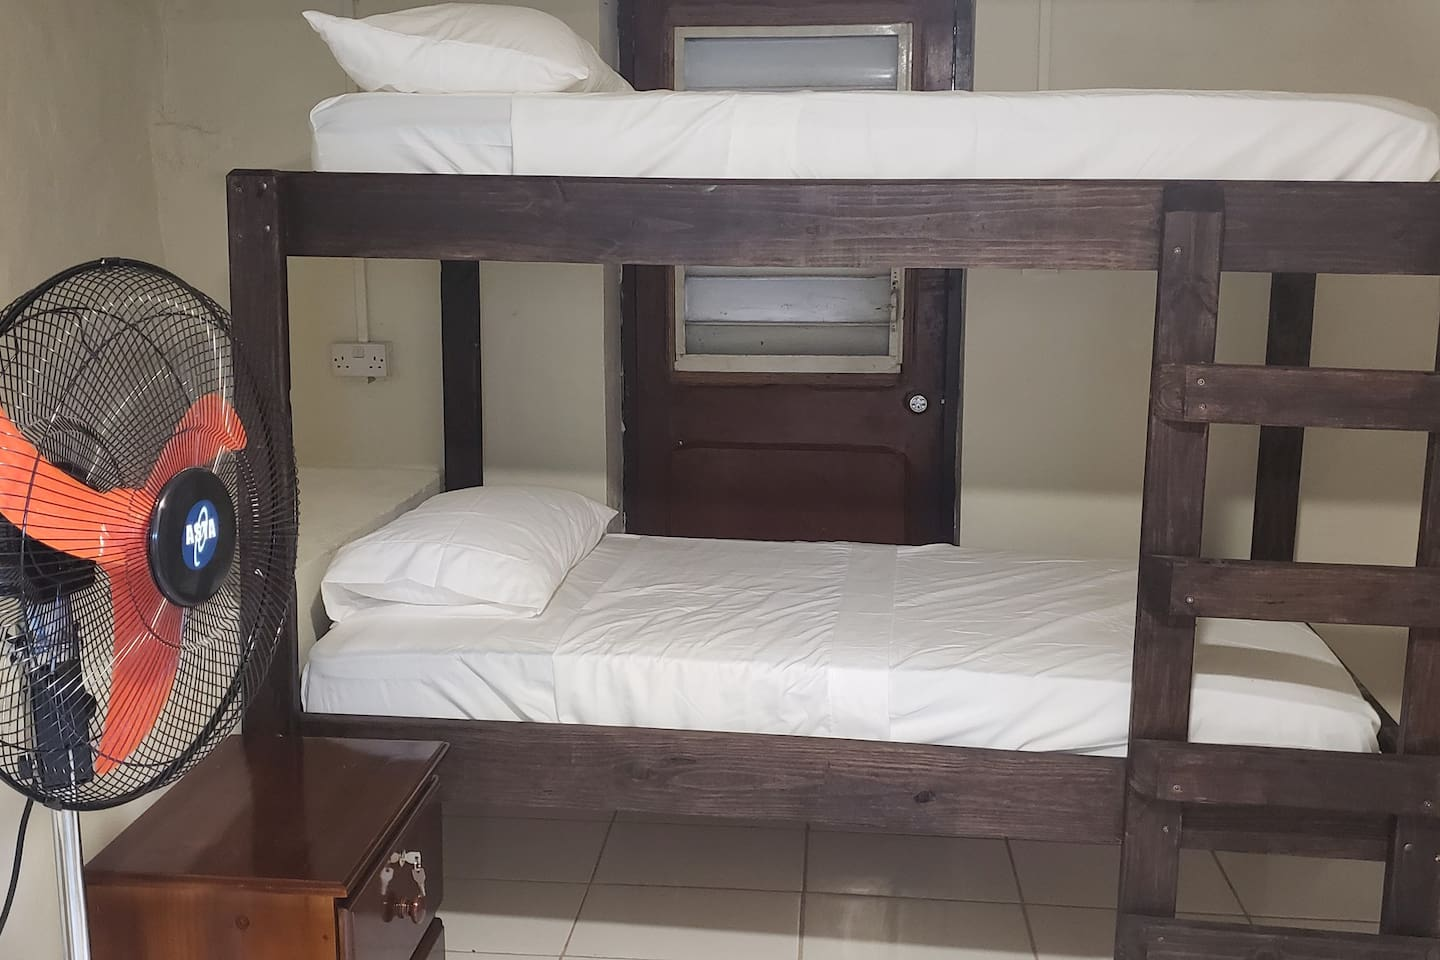 Bunk beds in open room